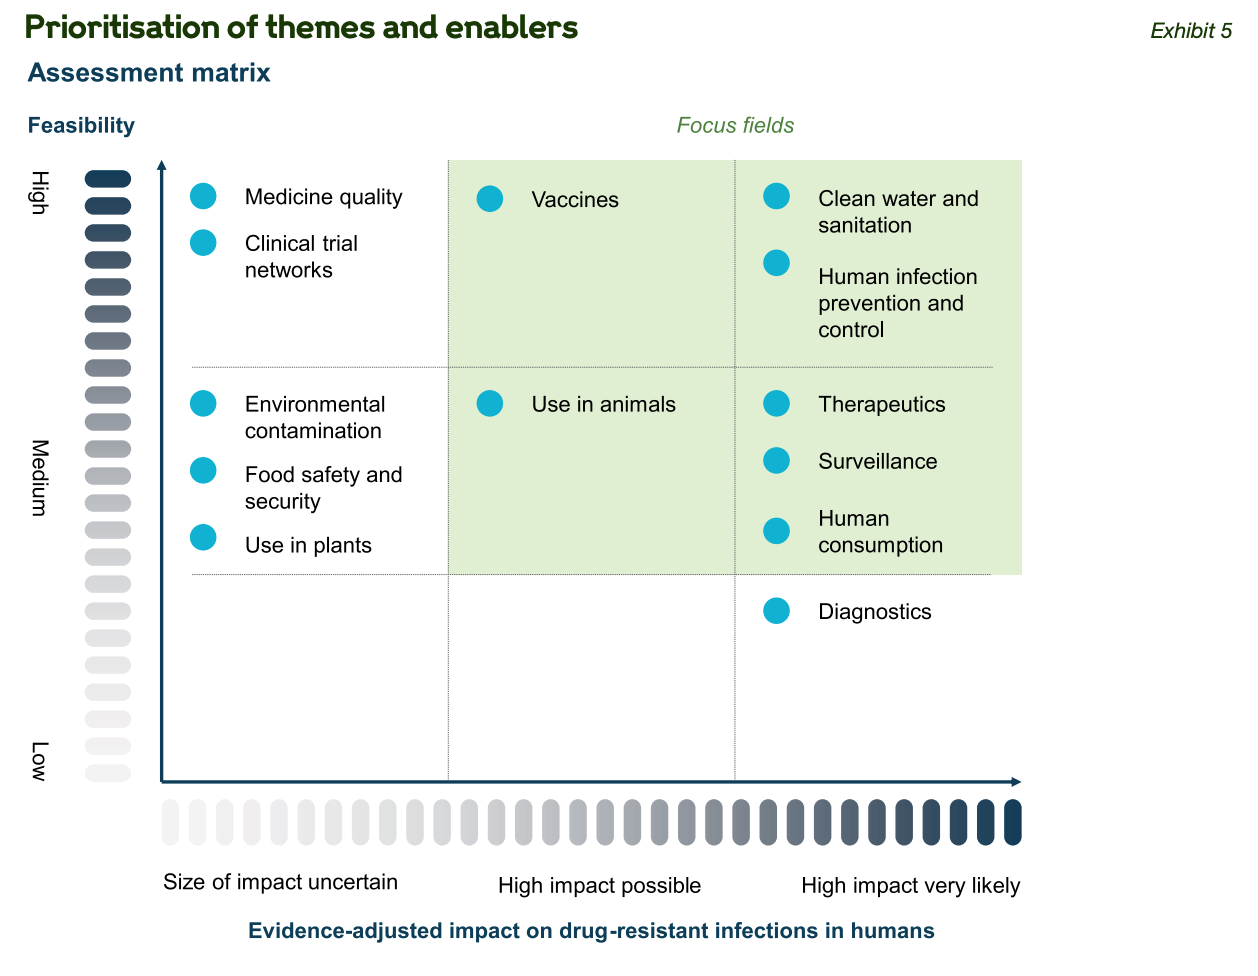 A figure from a report by Wellcome showing water and sanitation and IPC in humans as two of the most high-impact and feasible ways of addressing antimicrobial resistance.